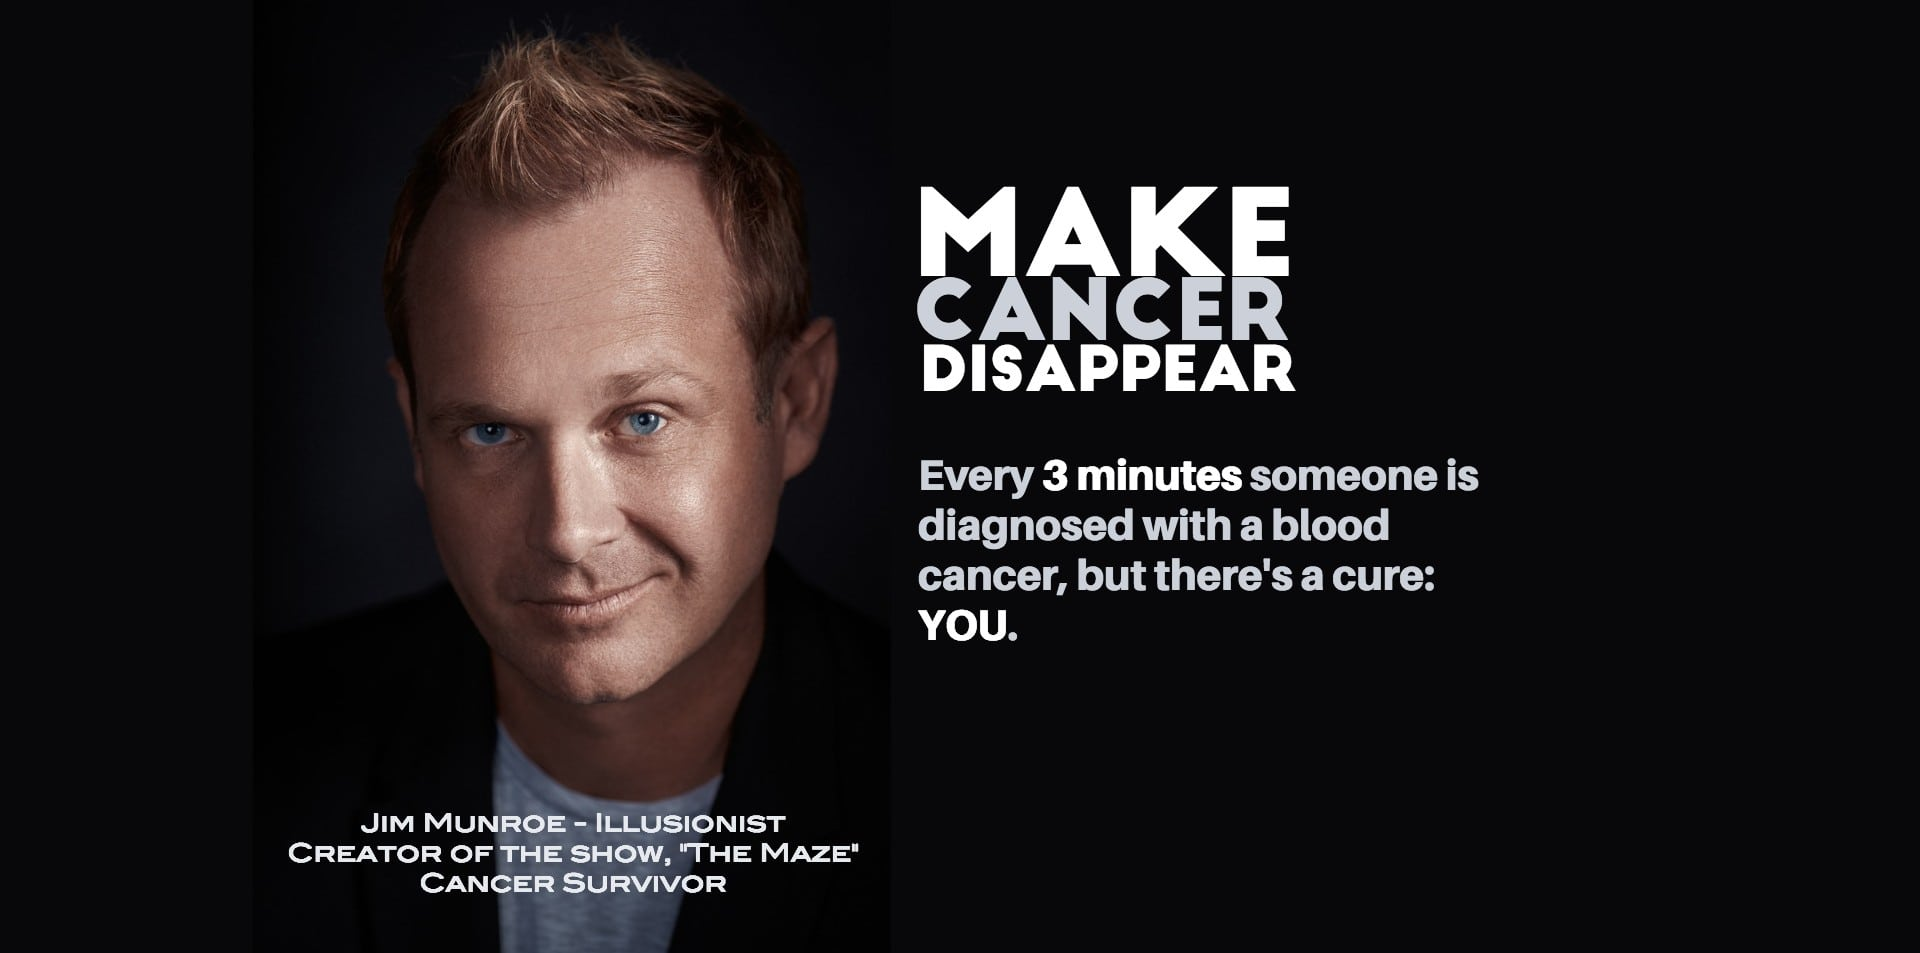 Make-Cancer-Disappear-Jim-Munroe-Maze-H1